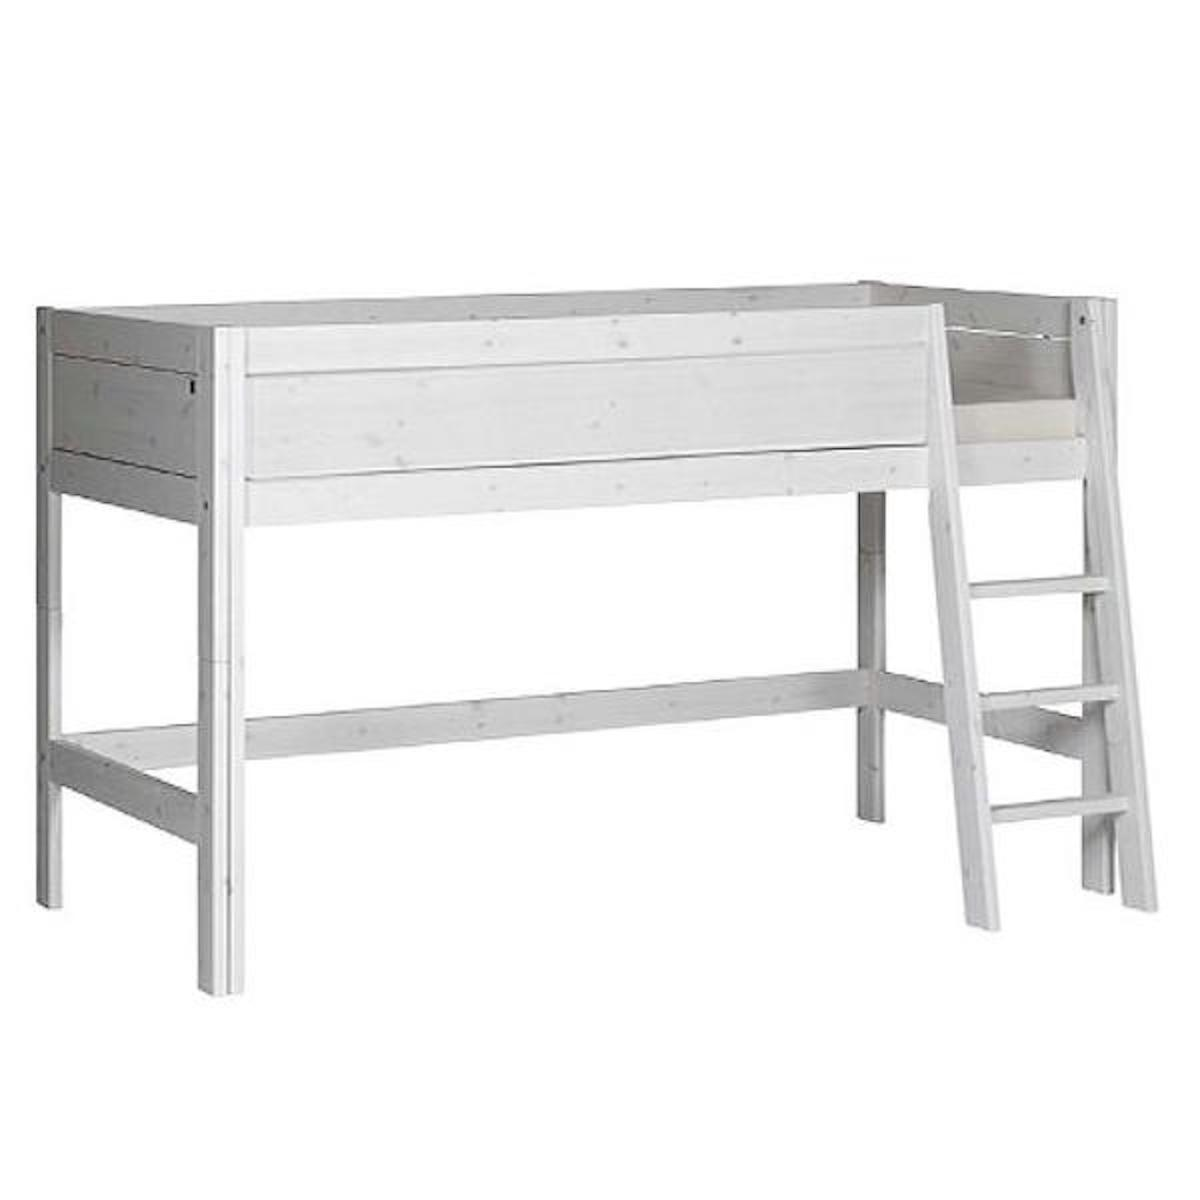 Cama media alta 90x200cm escalera inclinada-somier DELUXE Lifetime blanqueado